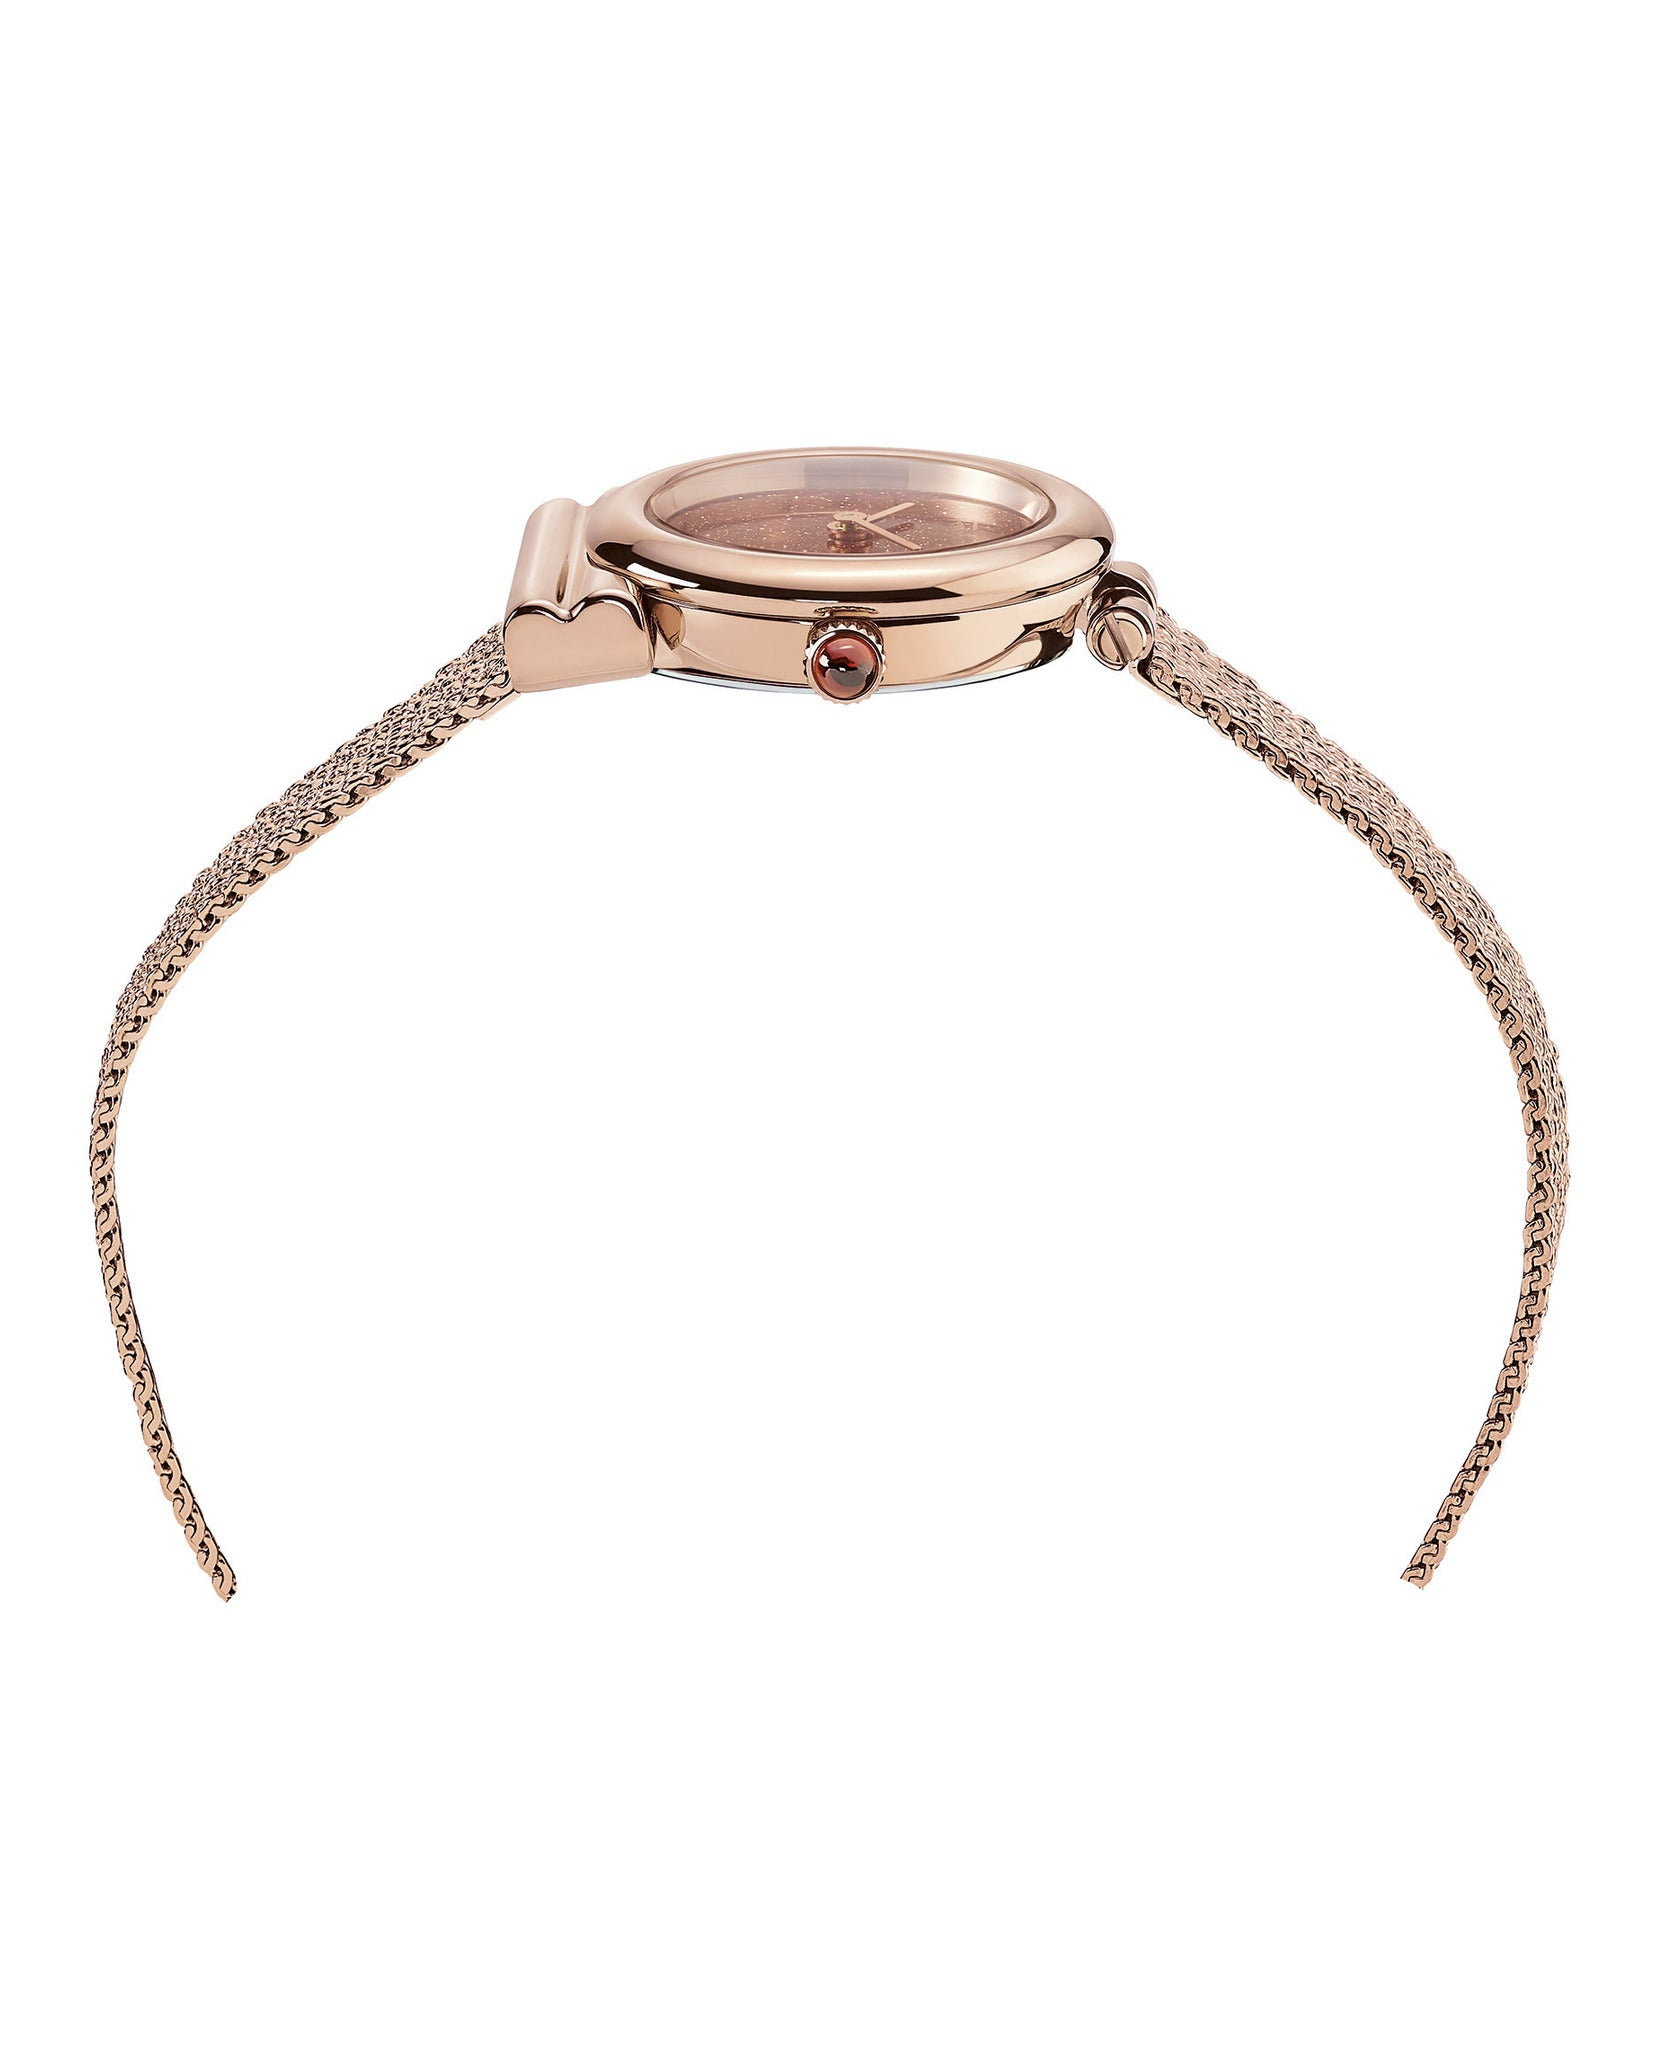 Salvatore Ferragamo Gancini Holiday Caps Watch